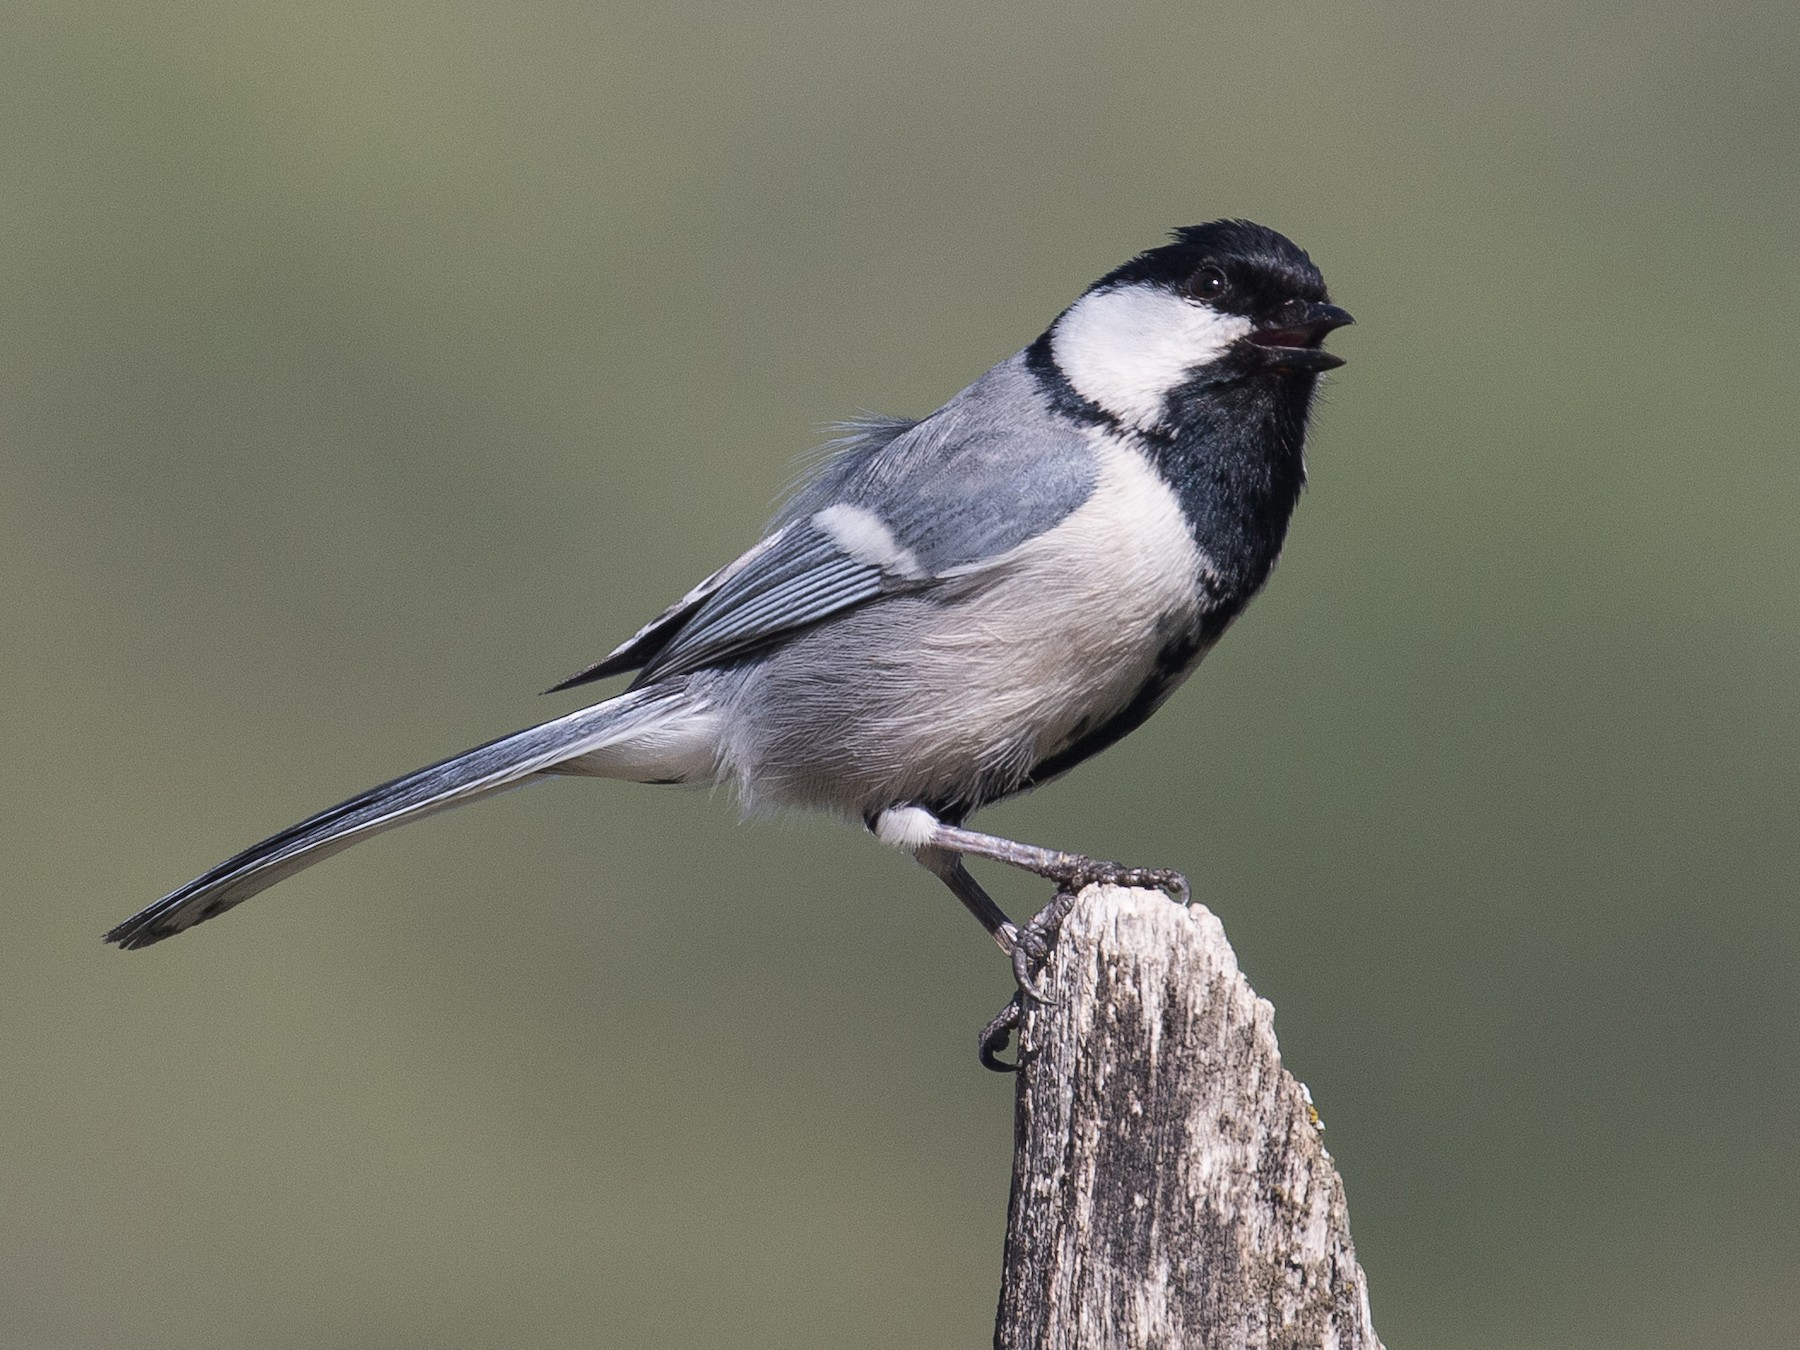 Great Tit - James Kennerley 🦖